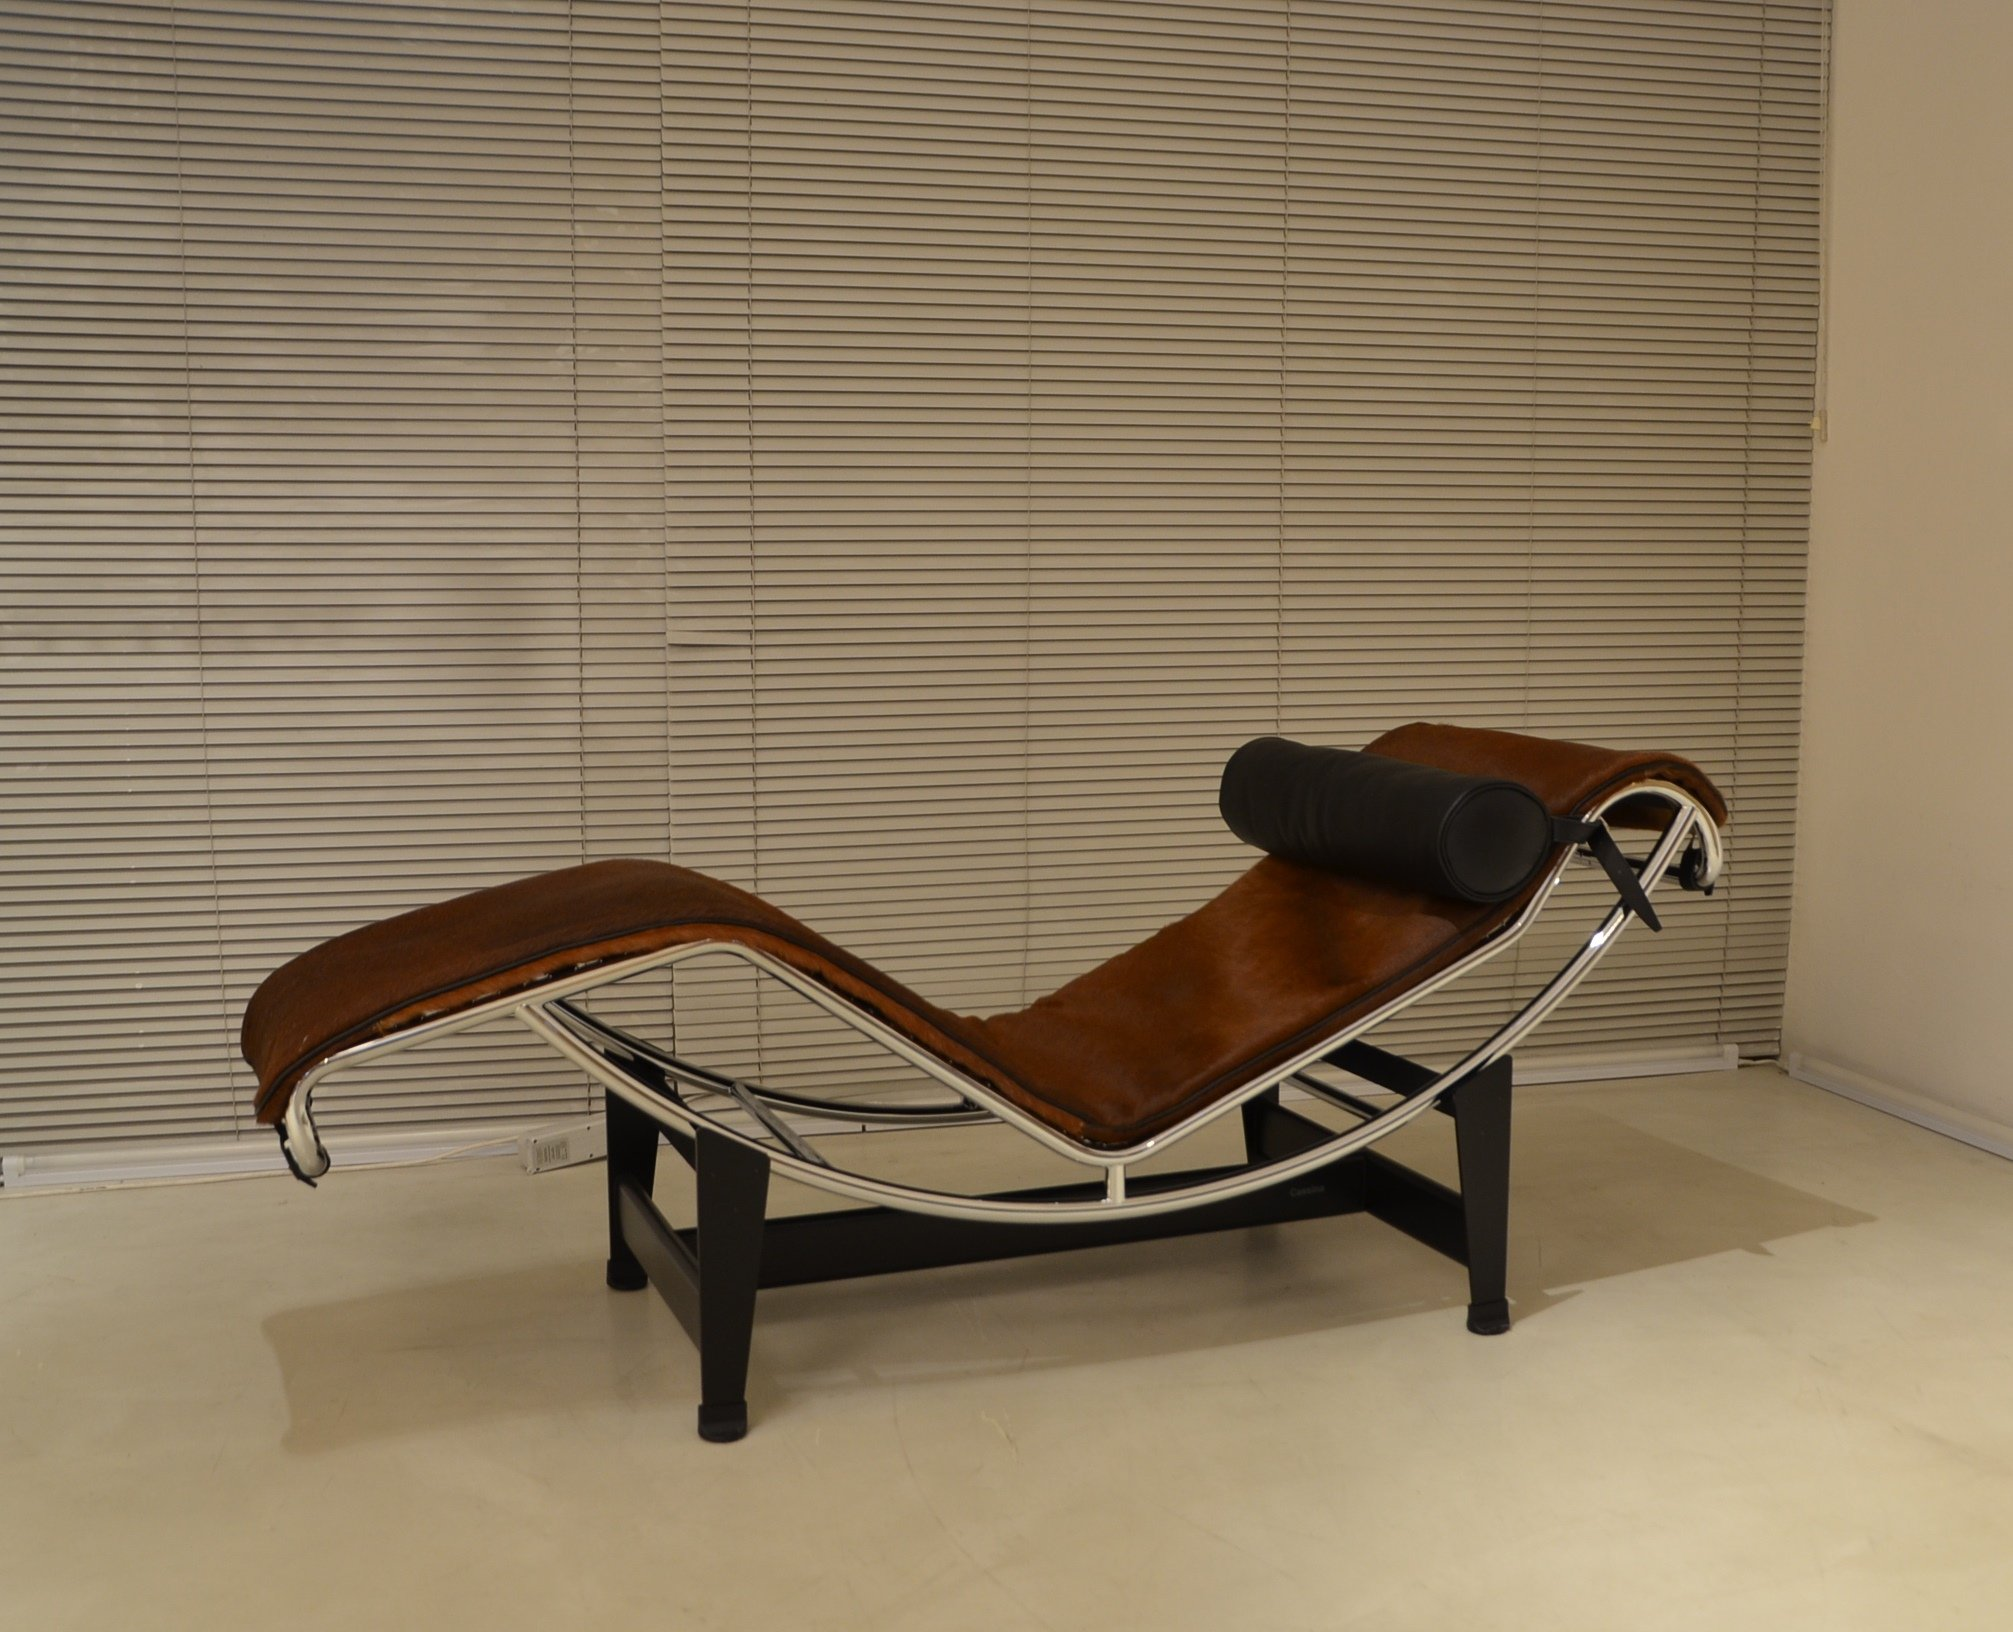 chaise longue LC4 design Le Corbusier Original Cassina icon made in Italy